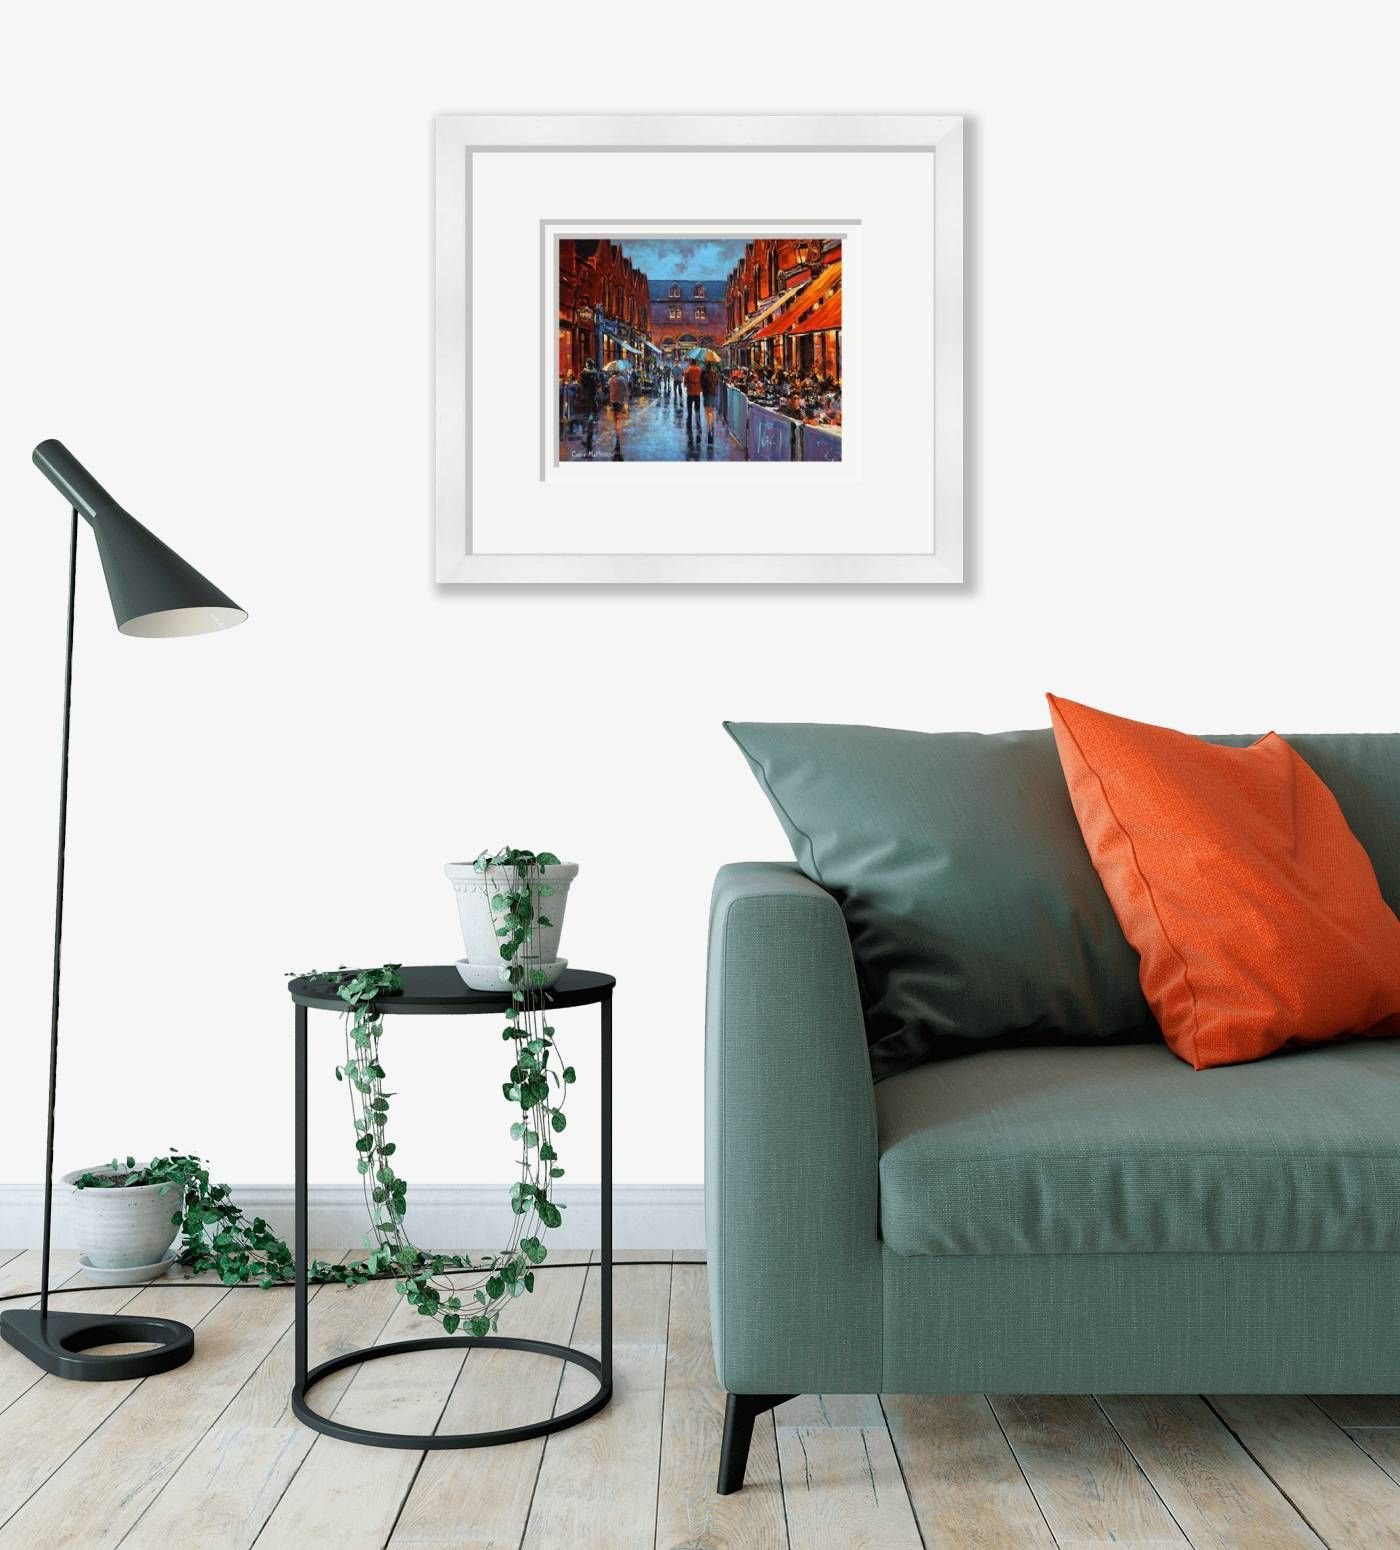 Large framed - Castlemarket, Dublin - 100 by Chris McMorrow